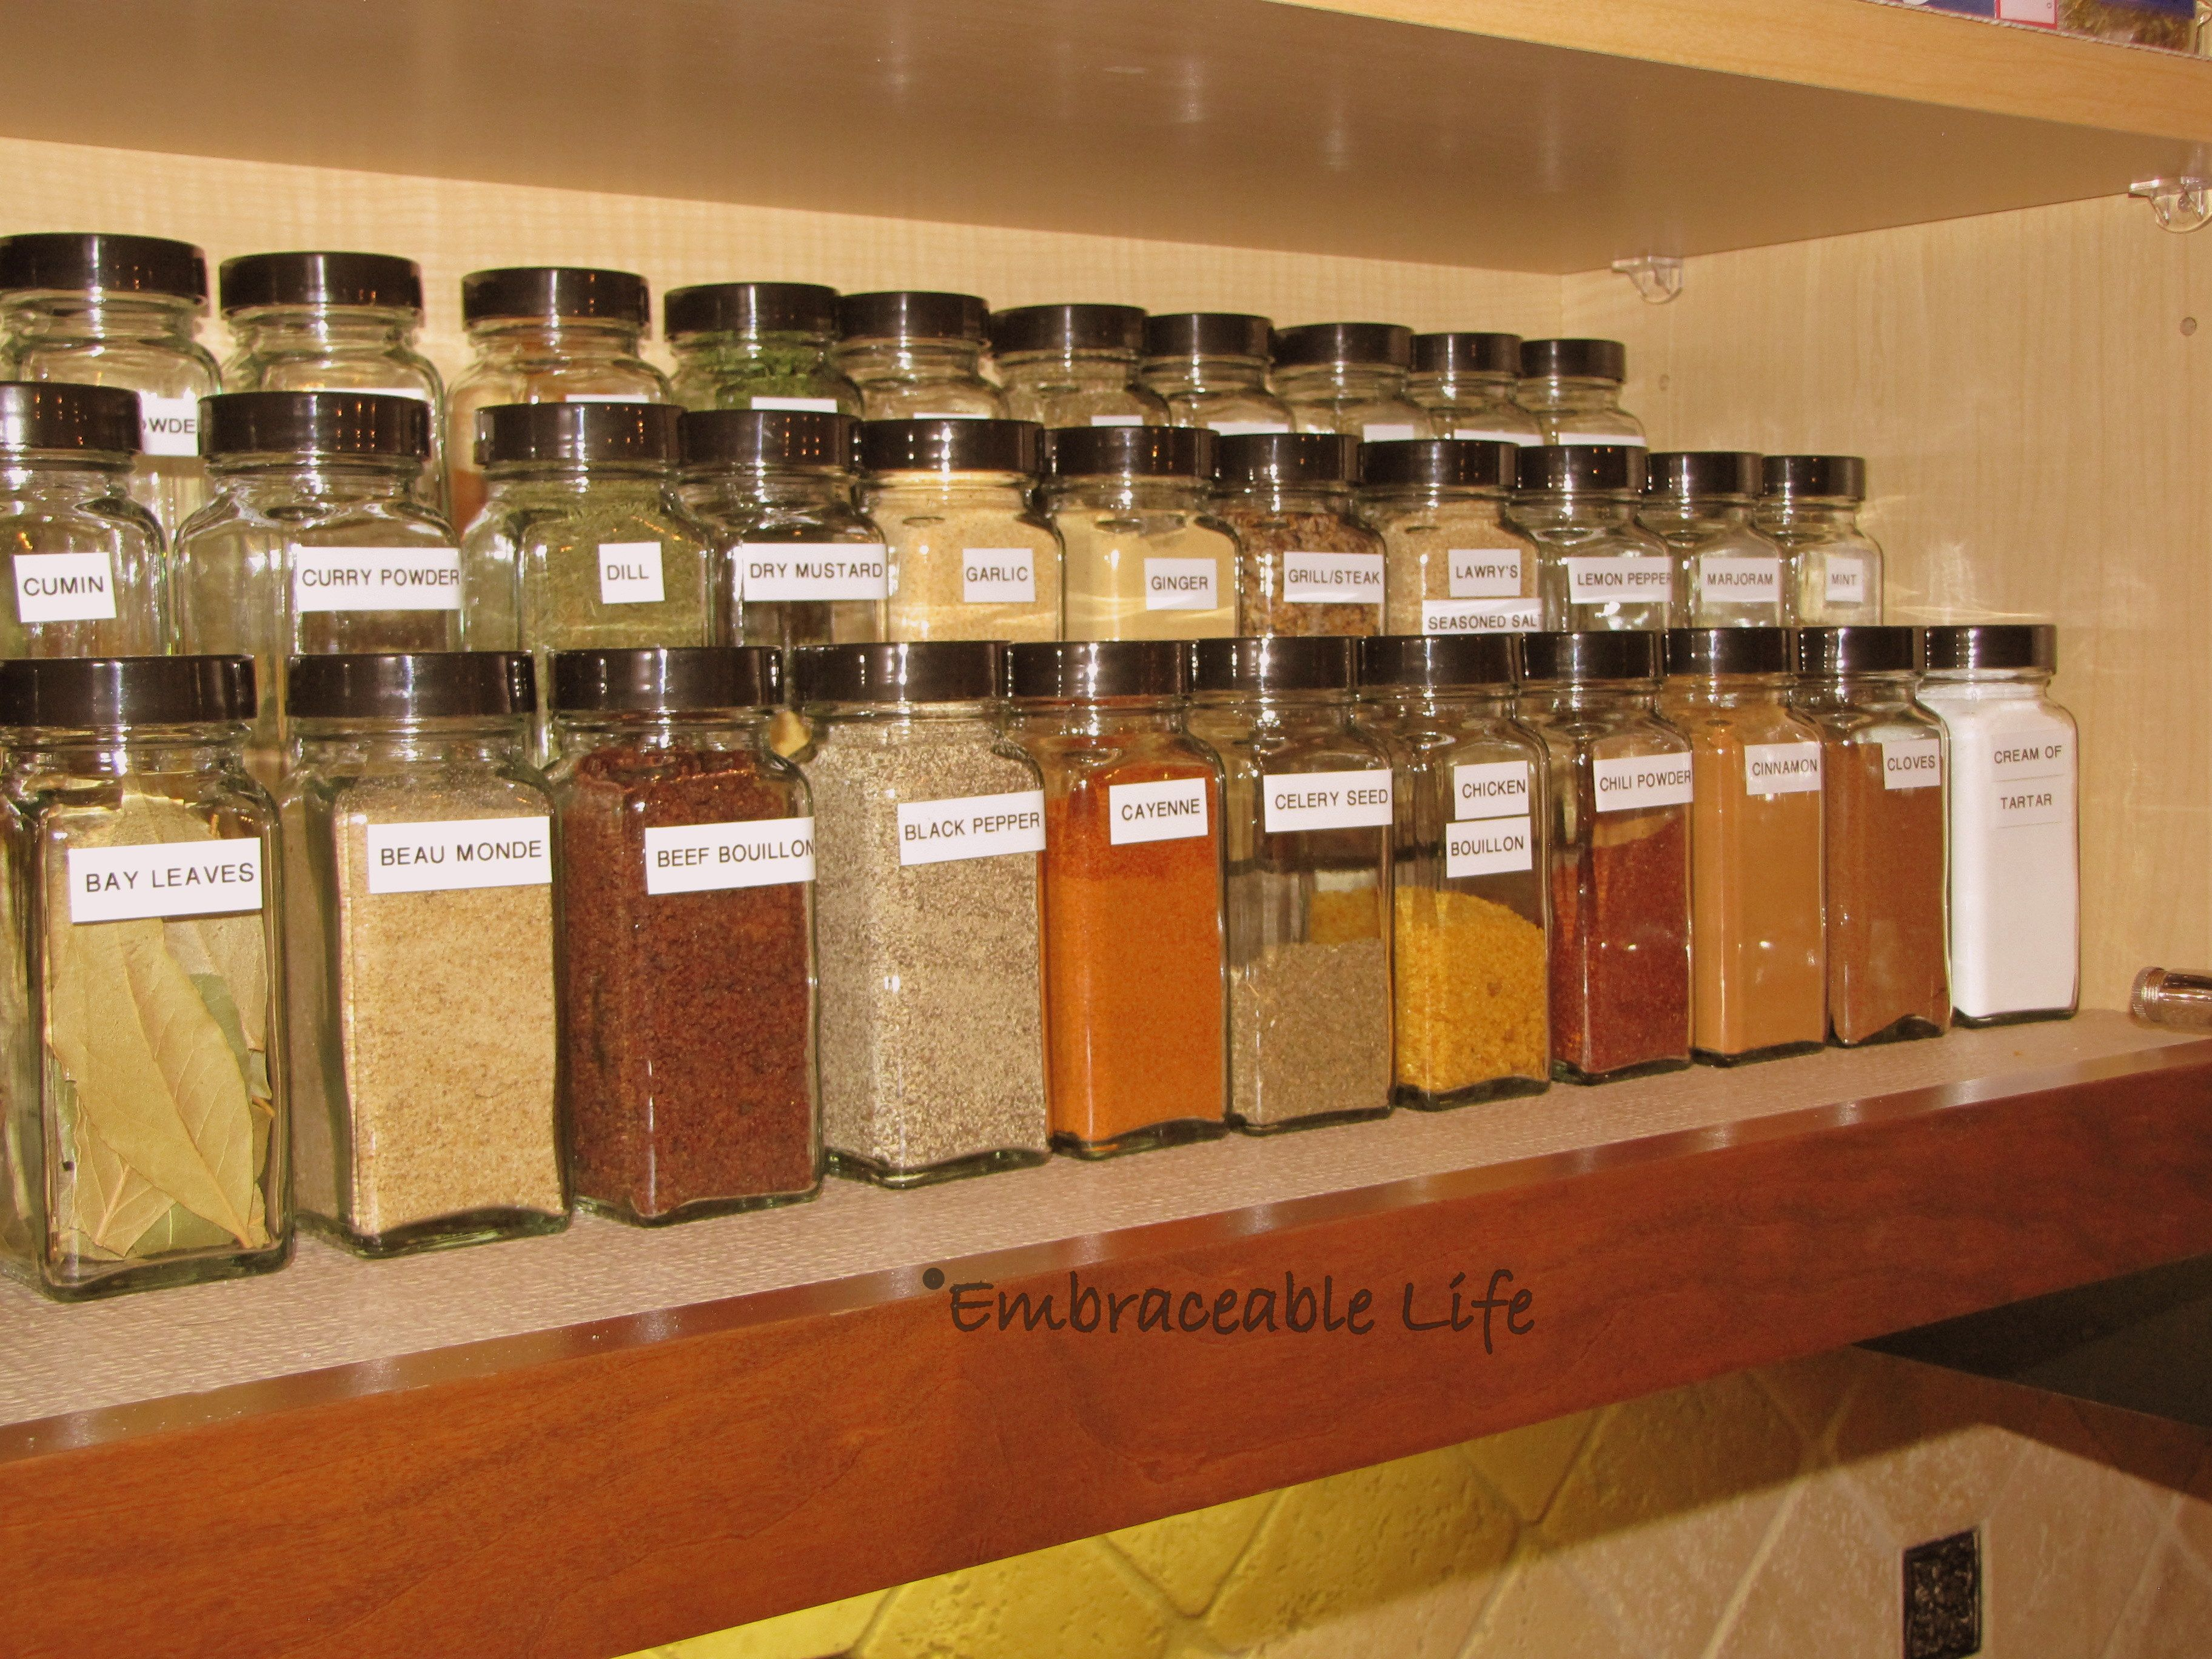 Spices I like this idea of using steps on a shelf so many herbs